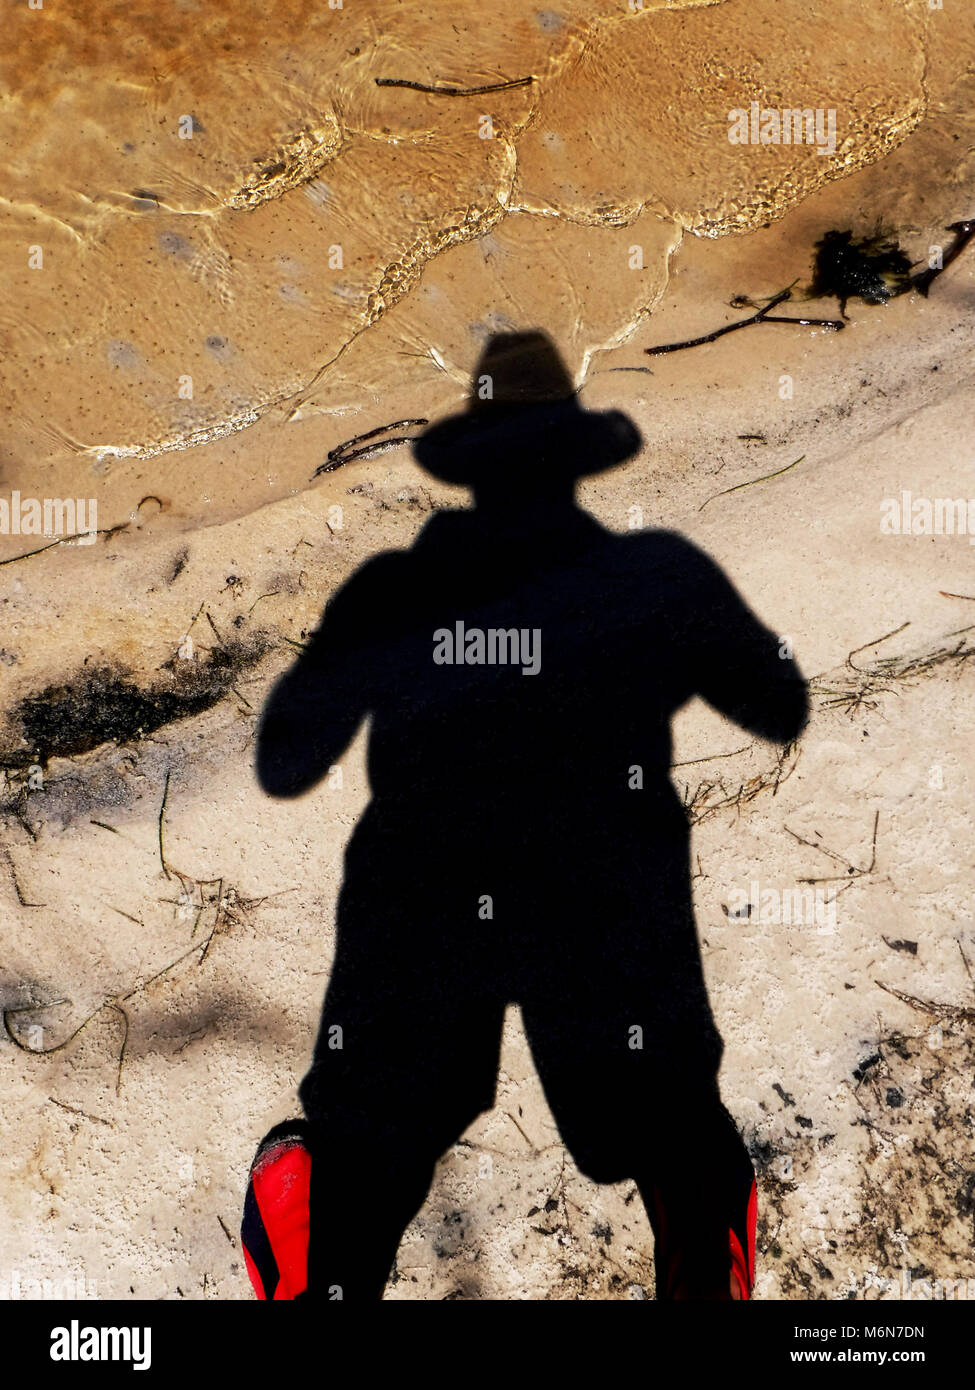 Dark shadow of man with hat against sand and water - Stock Image